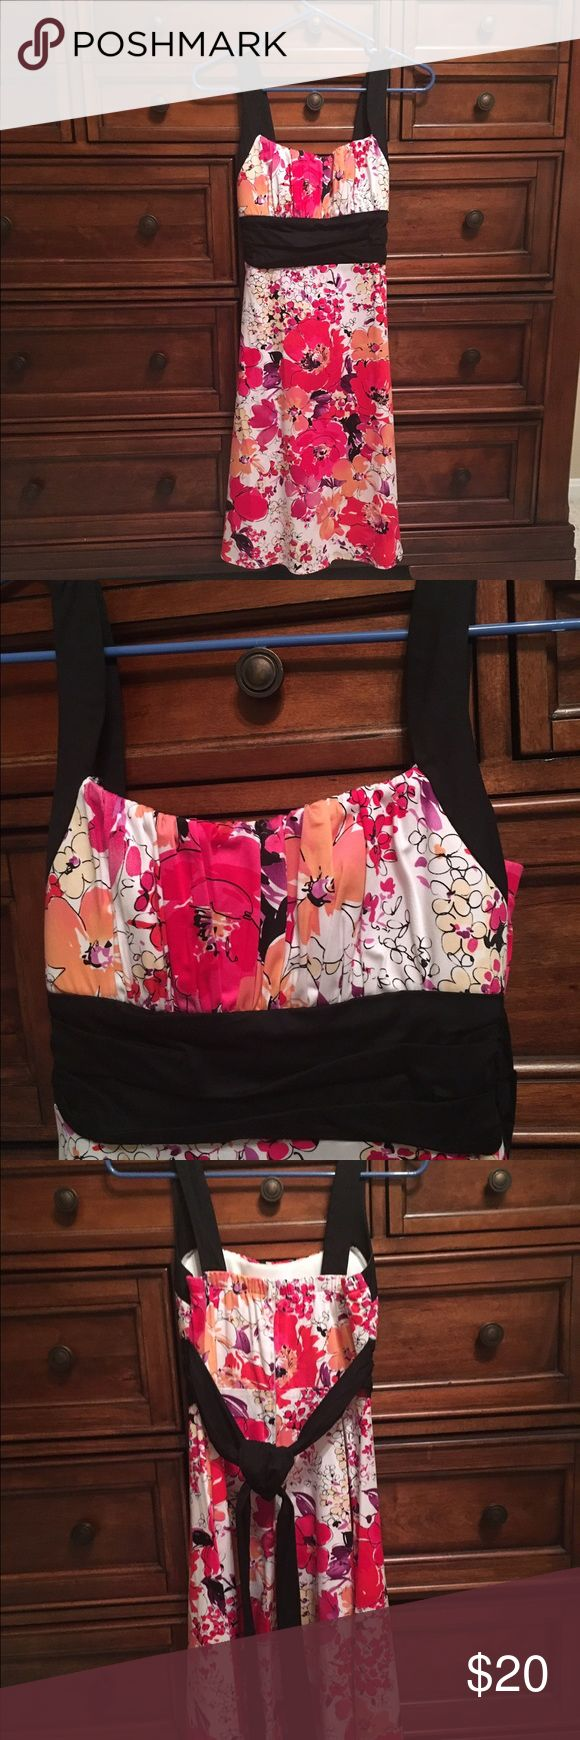 Cute flower dress Super cute, fun flowery dress. Bright pink and orange flowers with black straps and waste band. Can knit or bow tie in back of dress. Has zipper in back of dress, also has elastic in top of back of dress. Worn only once for Easter dinner. B Smart Dresses Midi